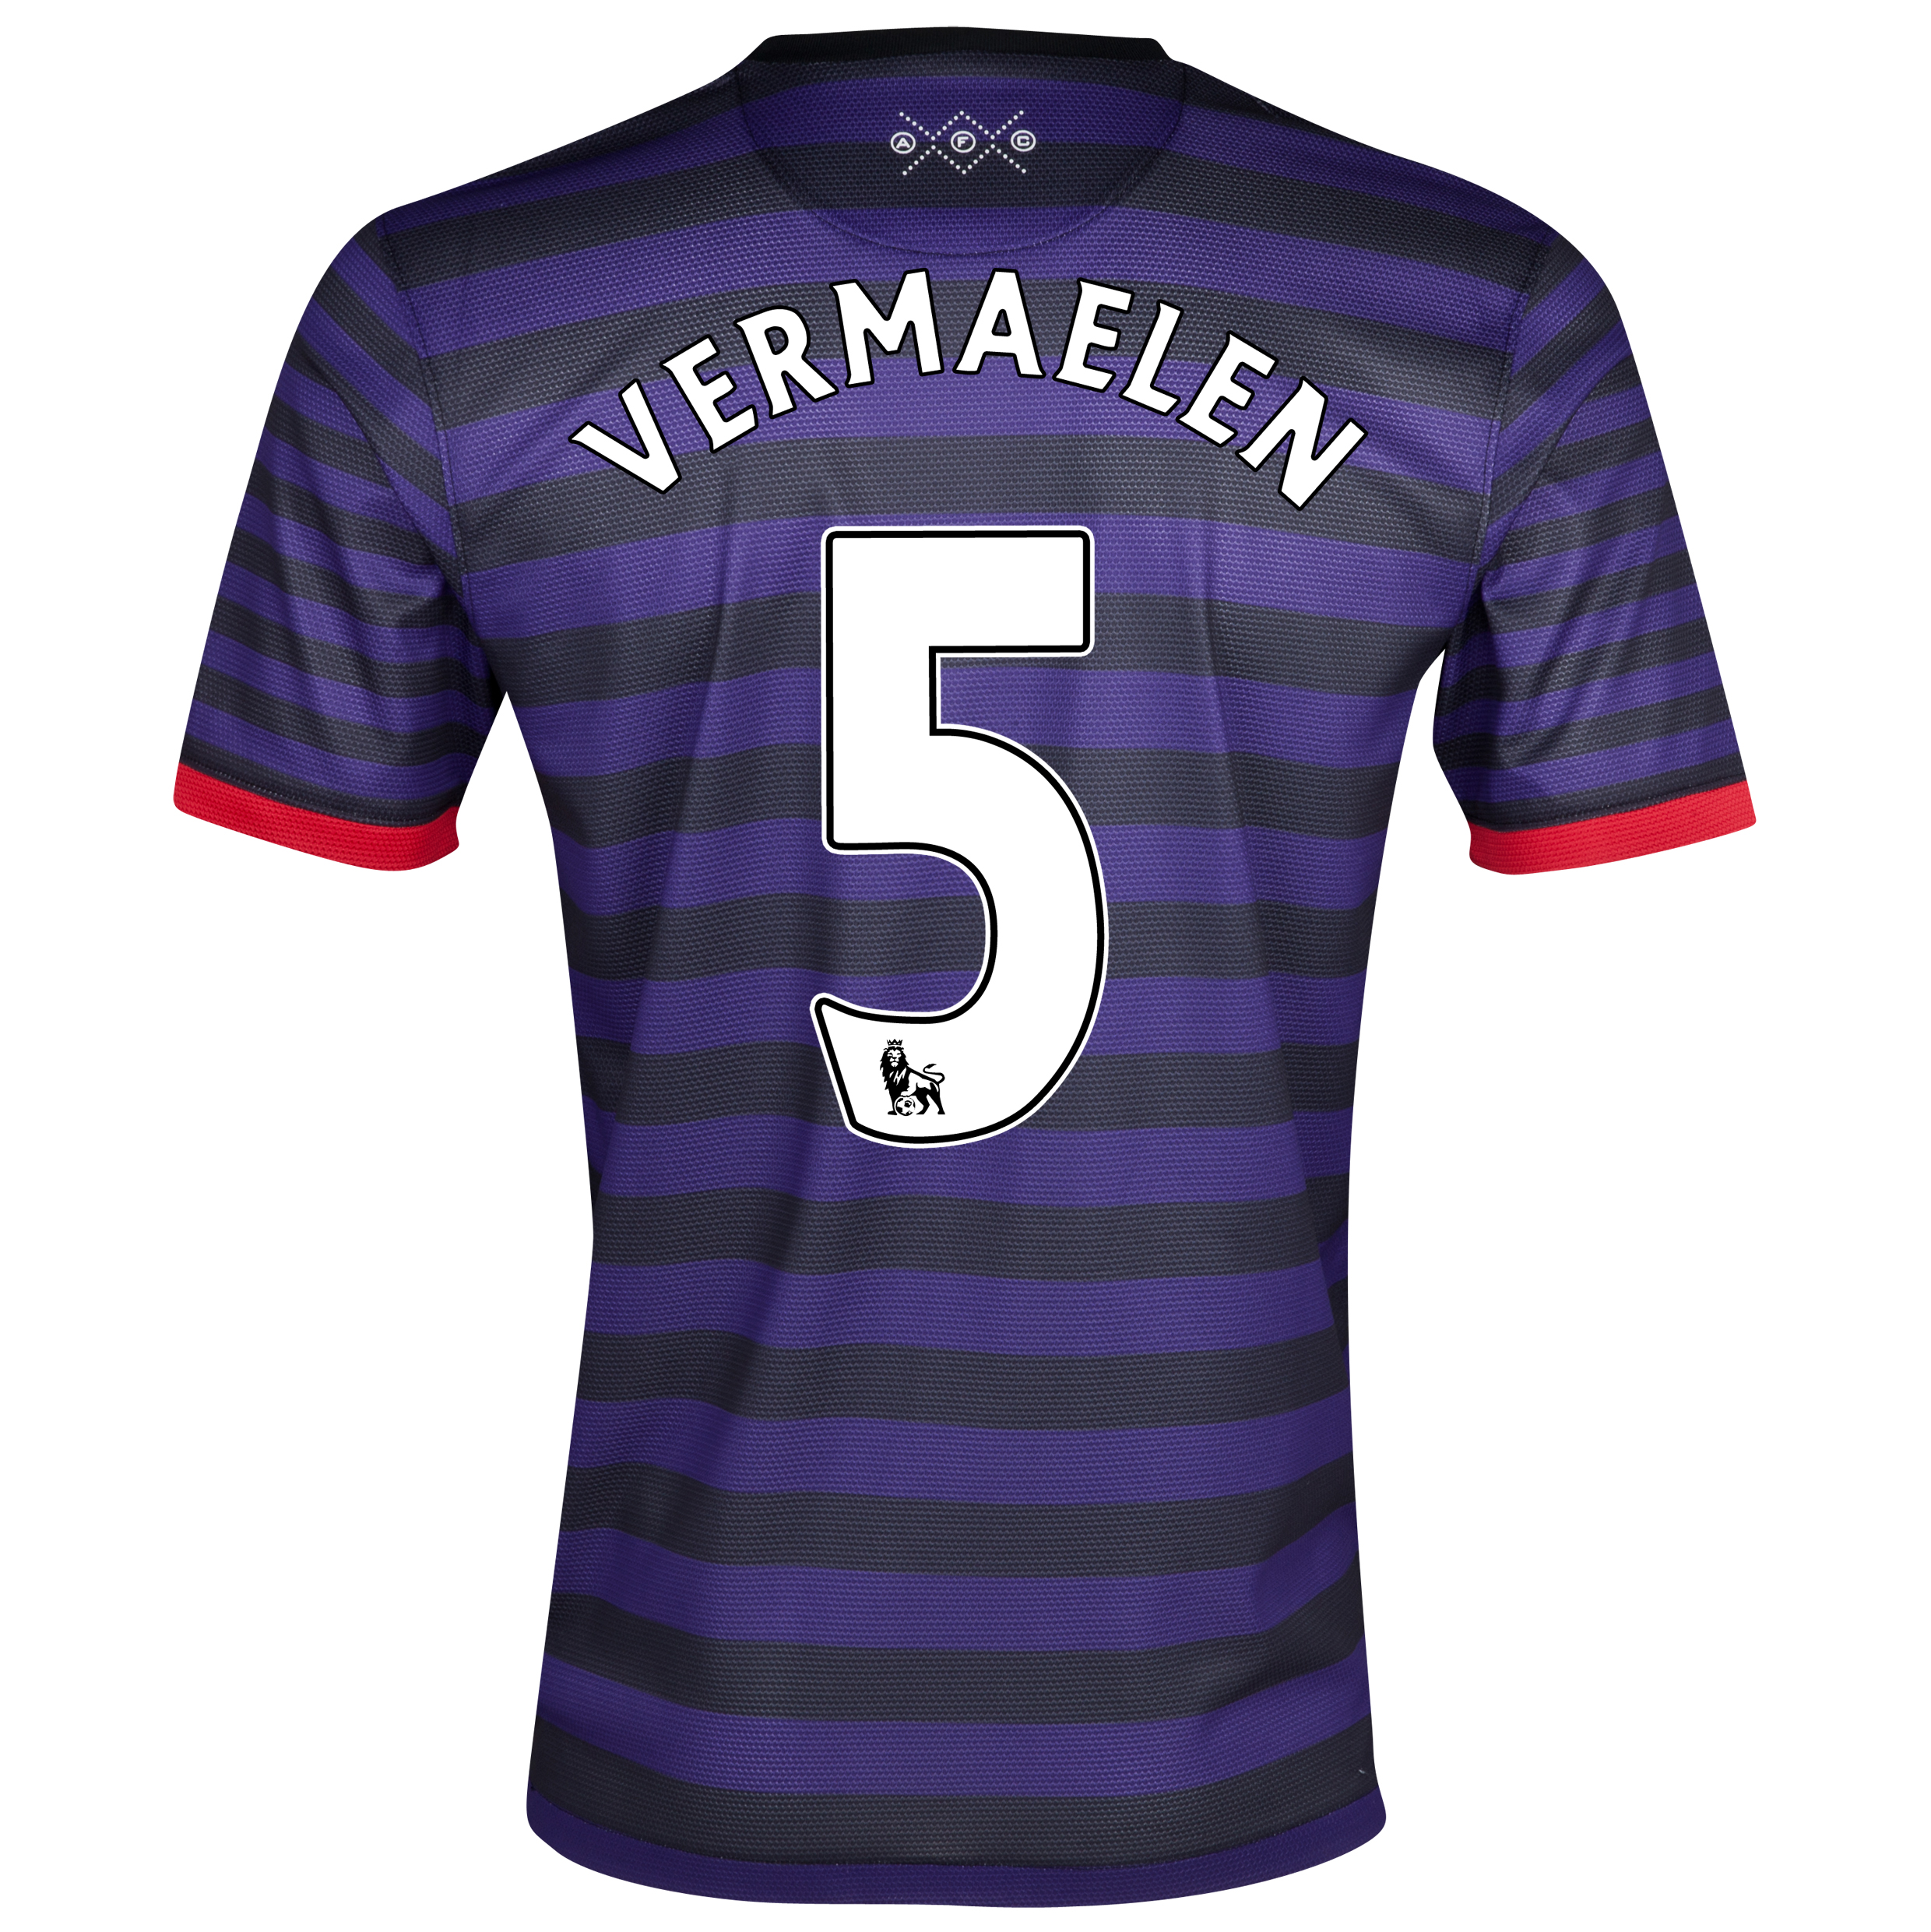 Arsenal Away Shirt 2012/13 with Vermaelen 5 printing